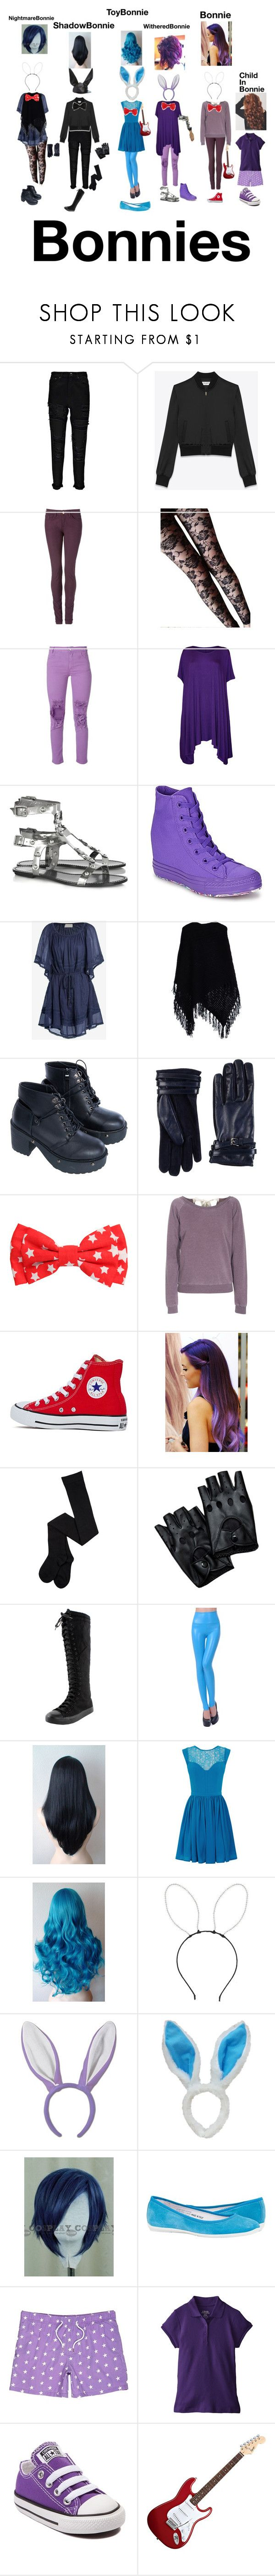 """""""All of the Bonnies"""" by lizziedacrazyginger ❤ liked on Polyvore featuring Boohoo, Yves Saint Laurent, Tommy Hilfiger, Aries, WearAll, belle by Sigerson Morrison, Converse, Love Sam, Don't Miss Your Dreams and Space Style Concept"""